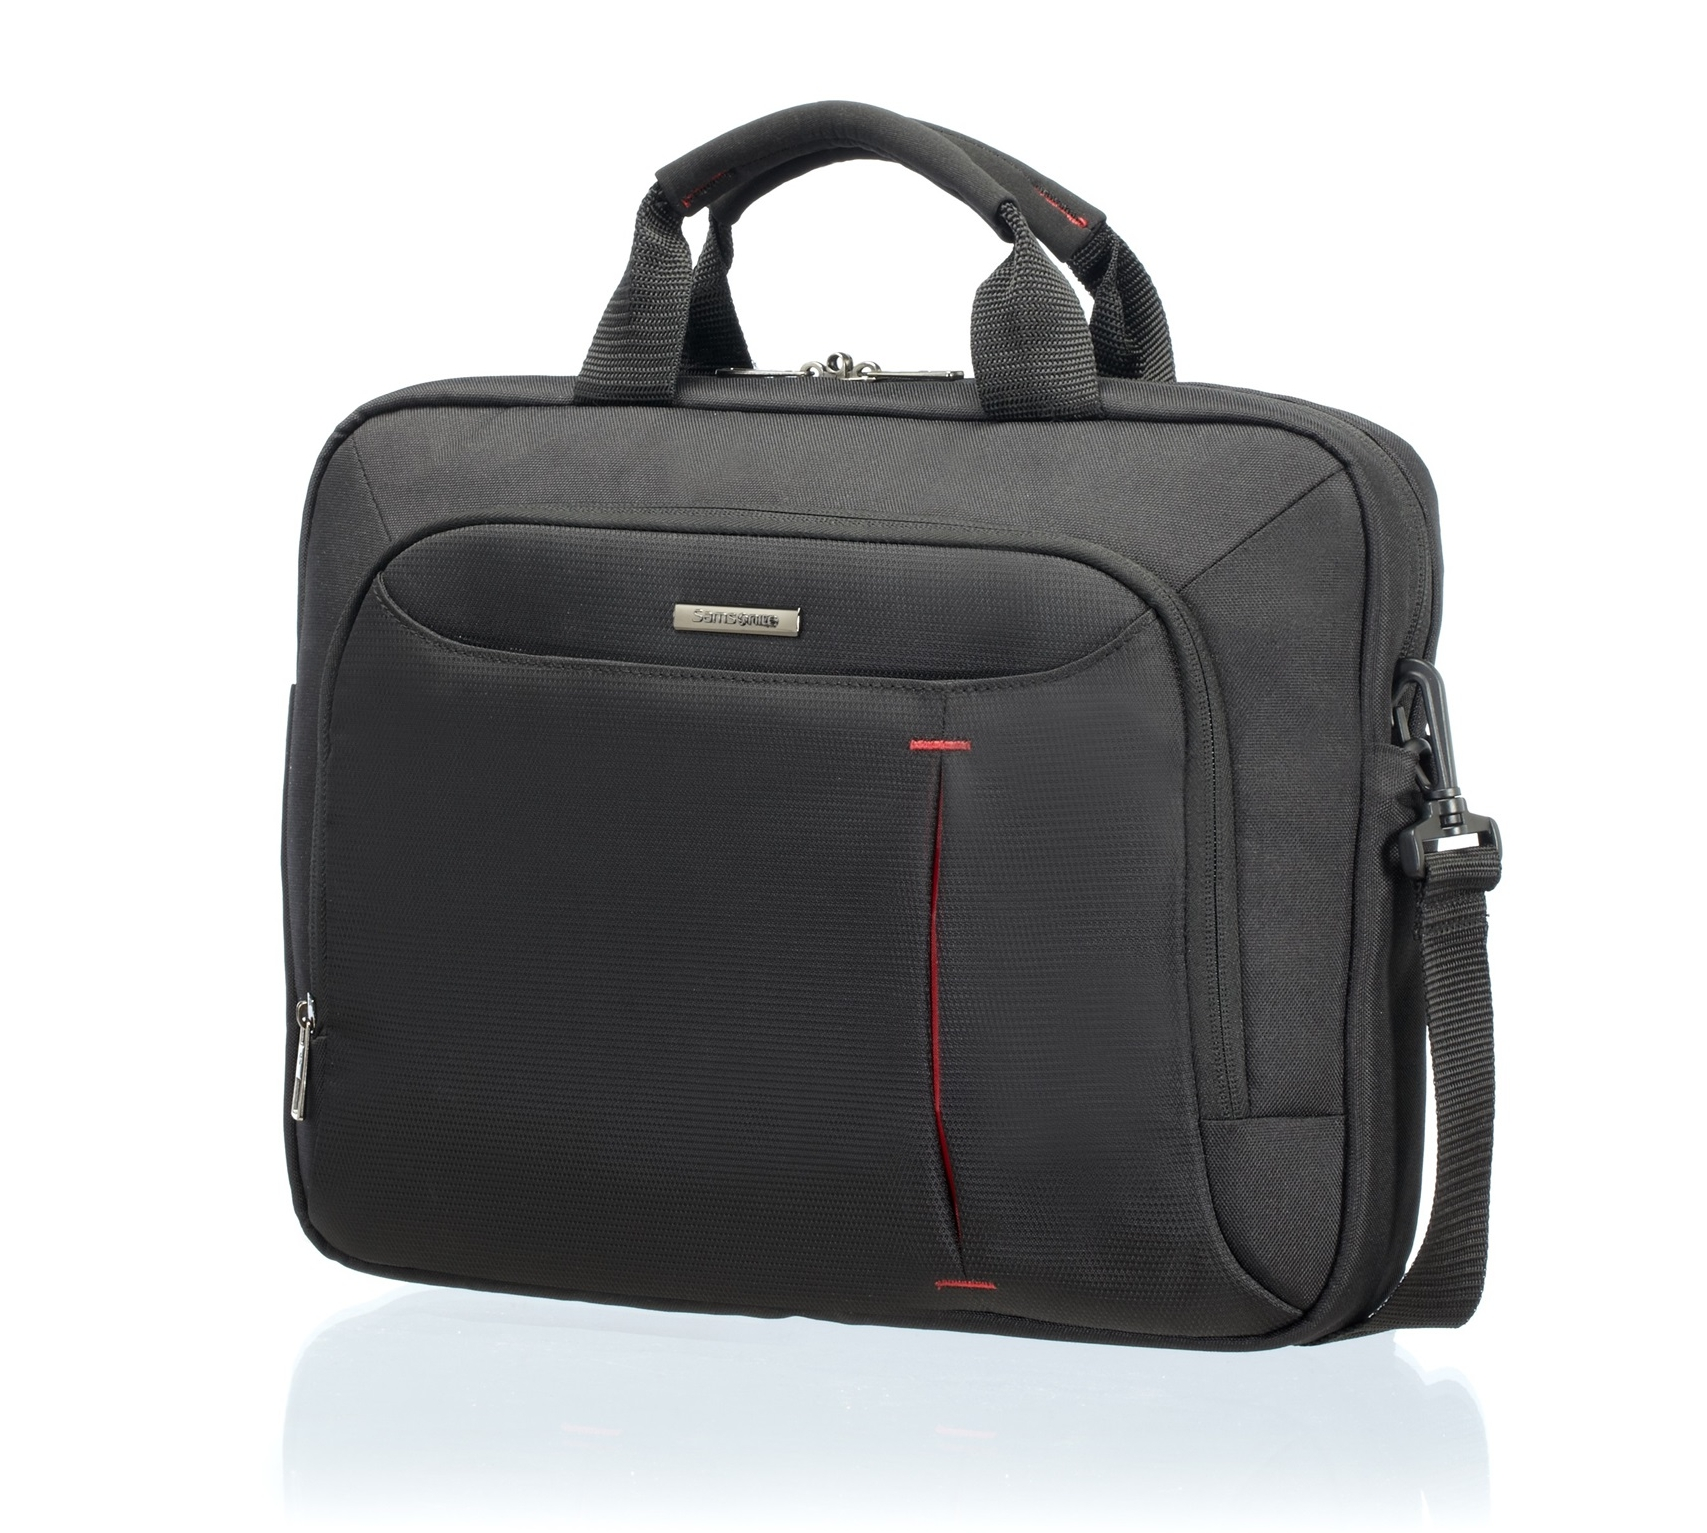 SAMSONITE - BORSE NOTEBOOK - 5414847411458